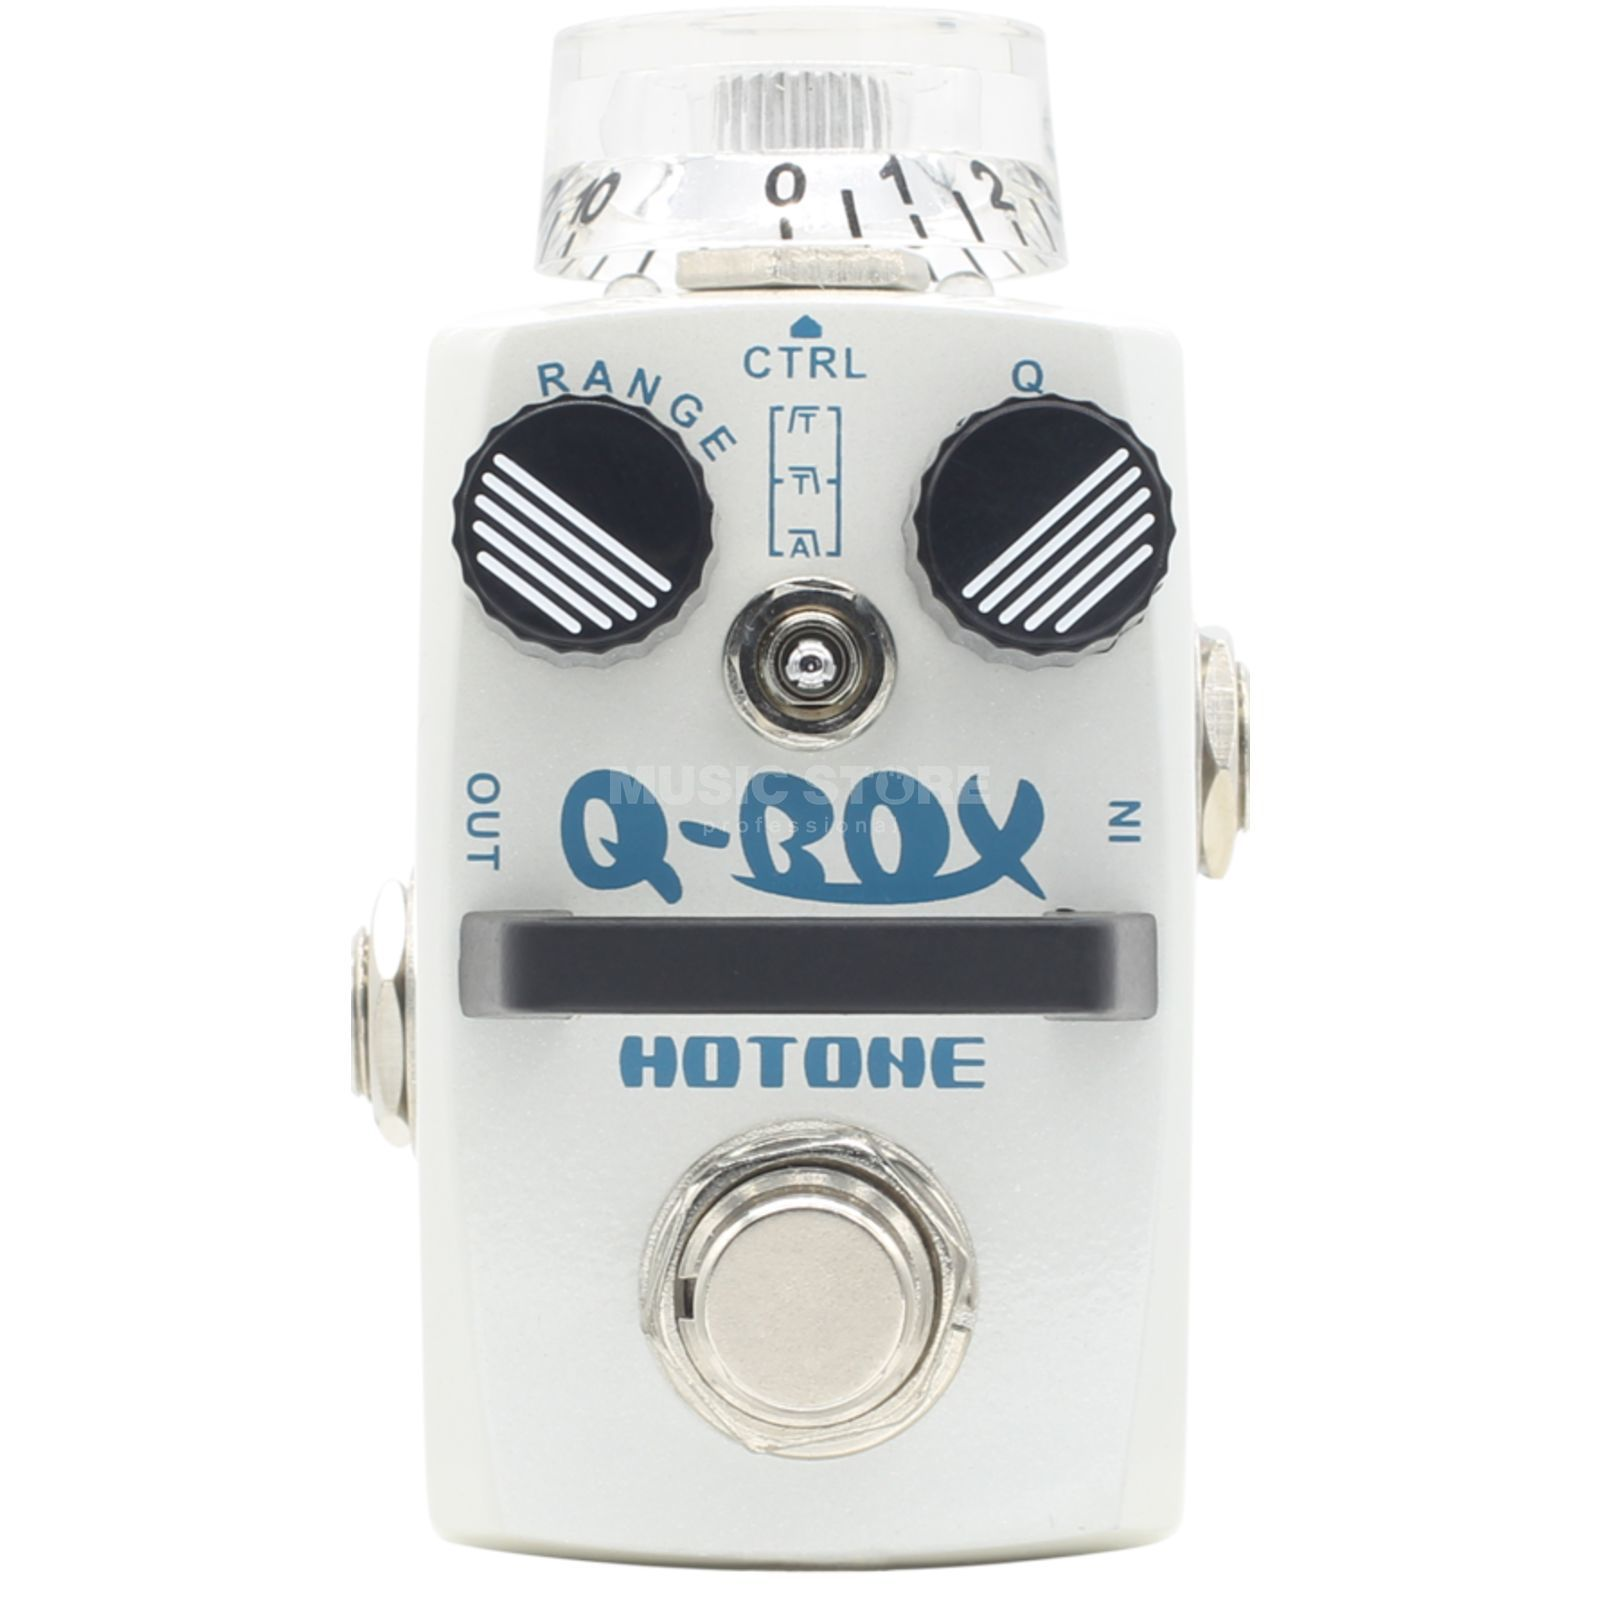 Hotone Skyline Q-Box Digtial Envelope Filter Product Image